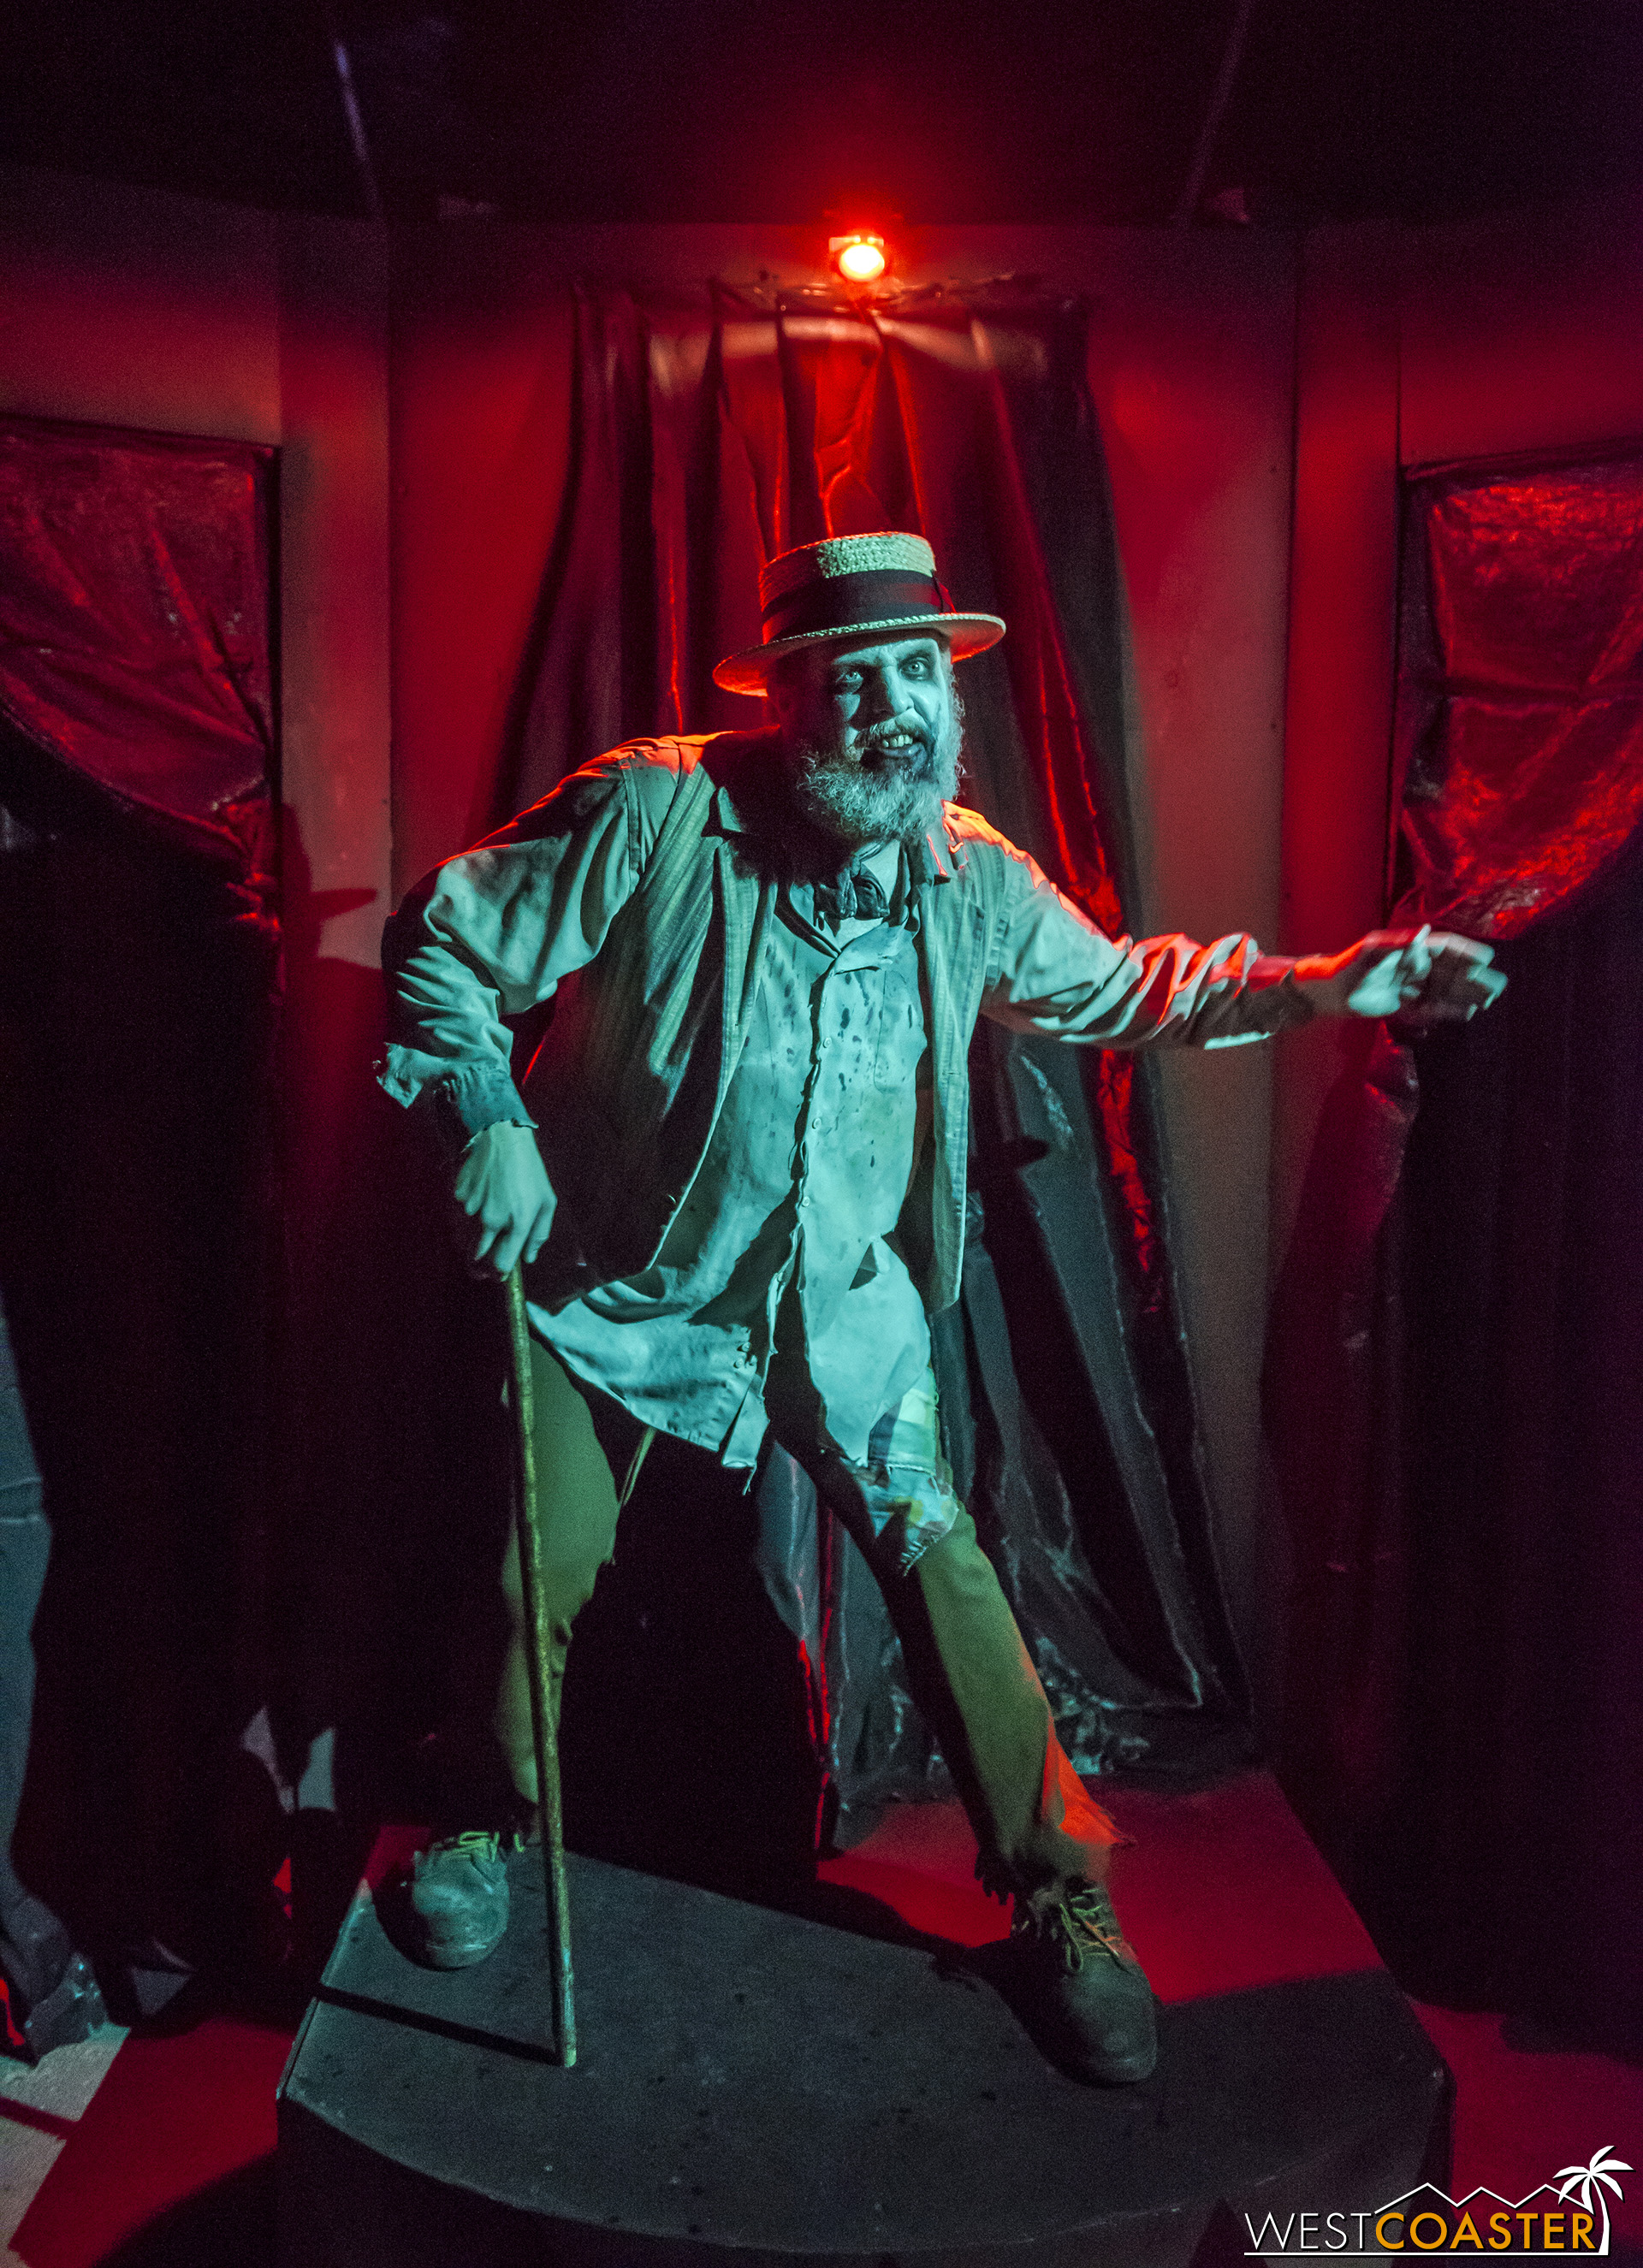 A barker heralds a branch in Circus, where guests can go one of two directions and encounter a different experience in each.